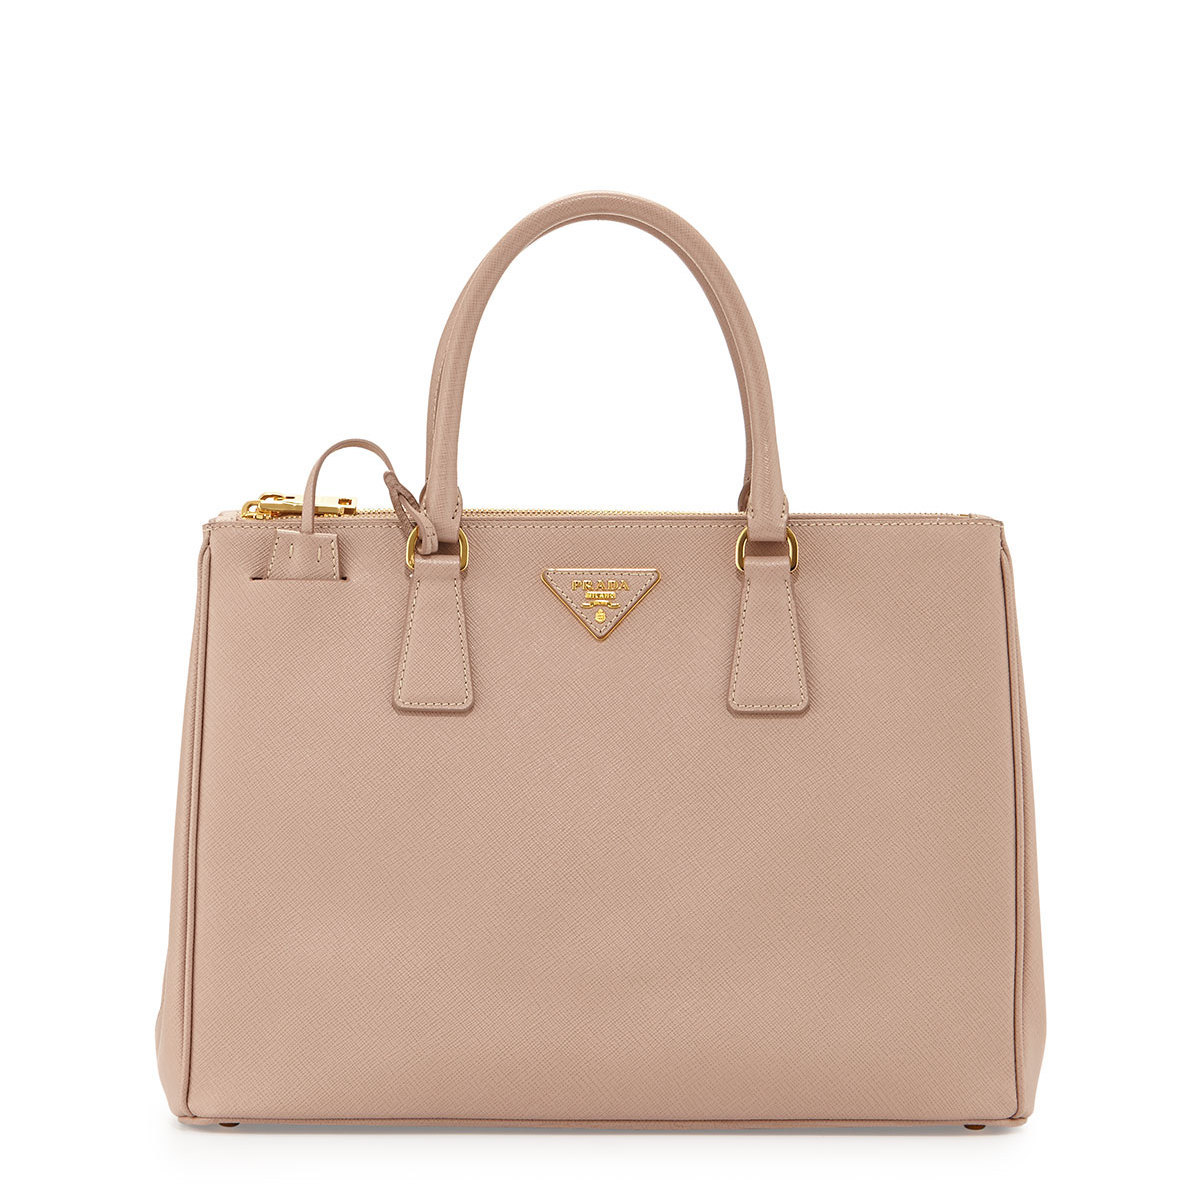 Even before she was a member of the royal family, style icon Kate always knew how to add an air of sophistication to her outfits. In her younger days, a neutral-hued Prada purse was a regular accessory. If you're really looking to make someone's gift-opening dreams come true this year, this luxury bag could be just the ticket!